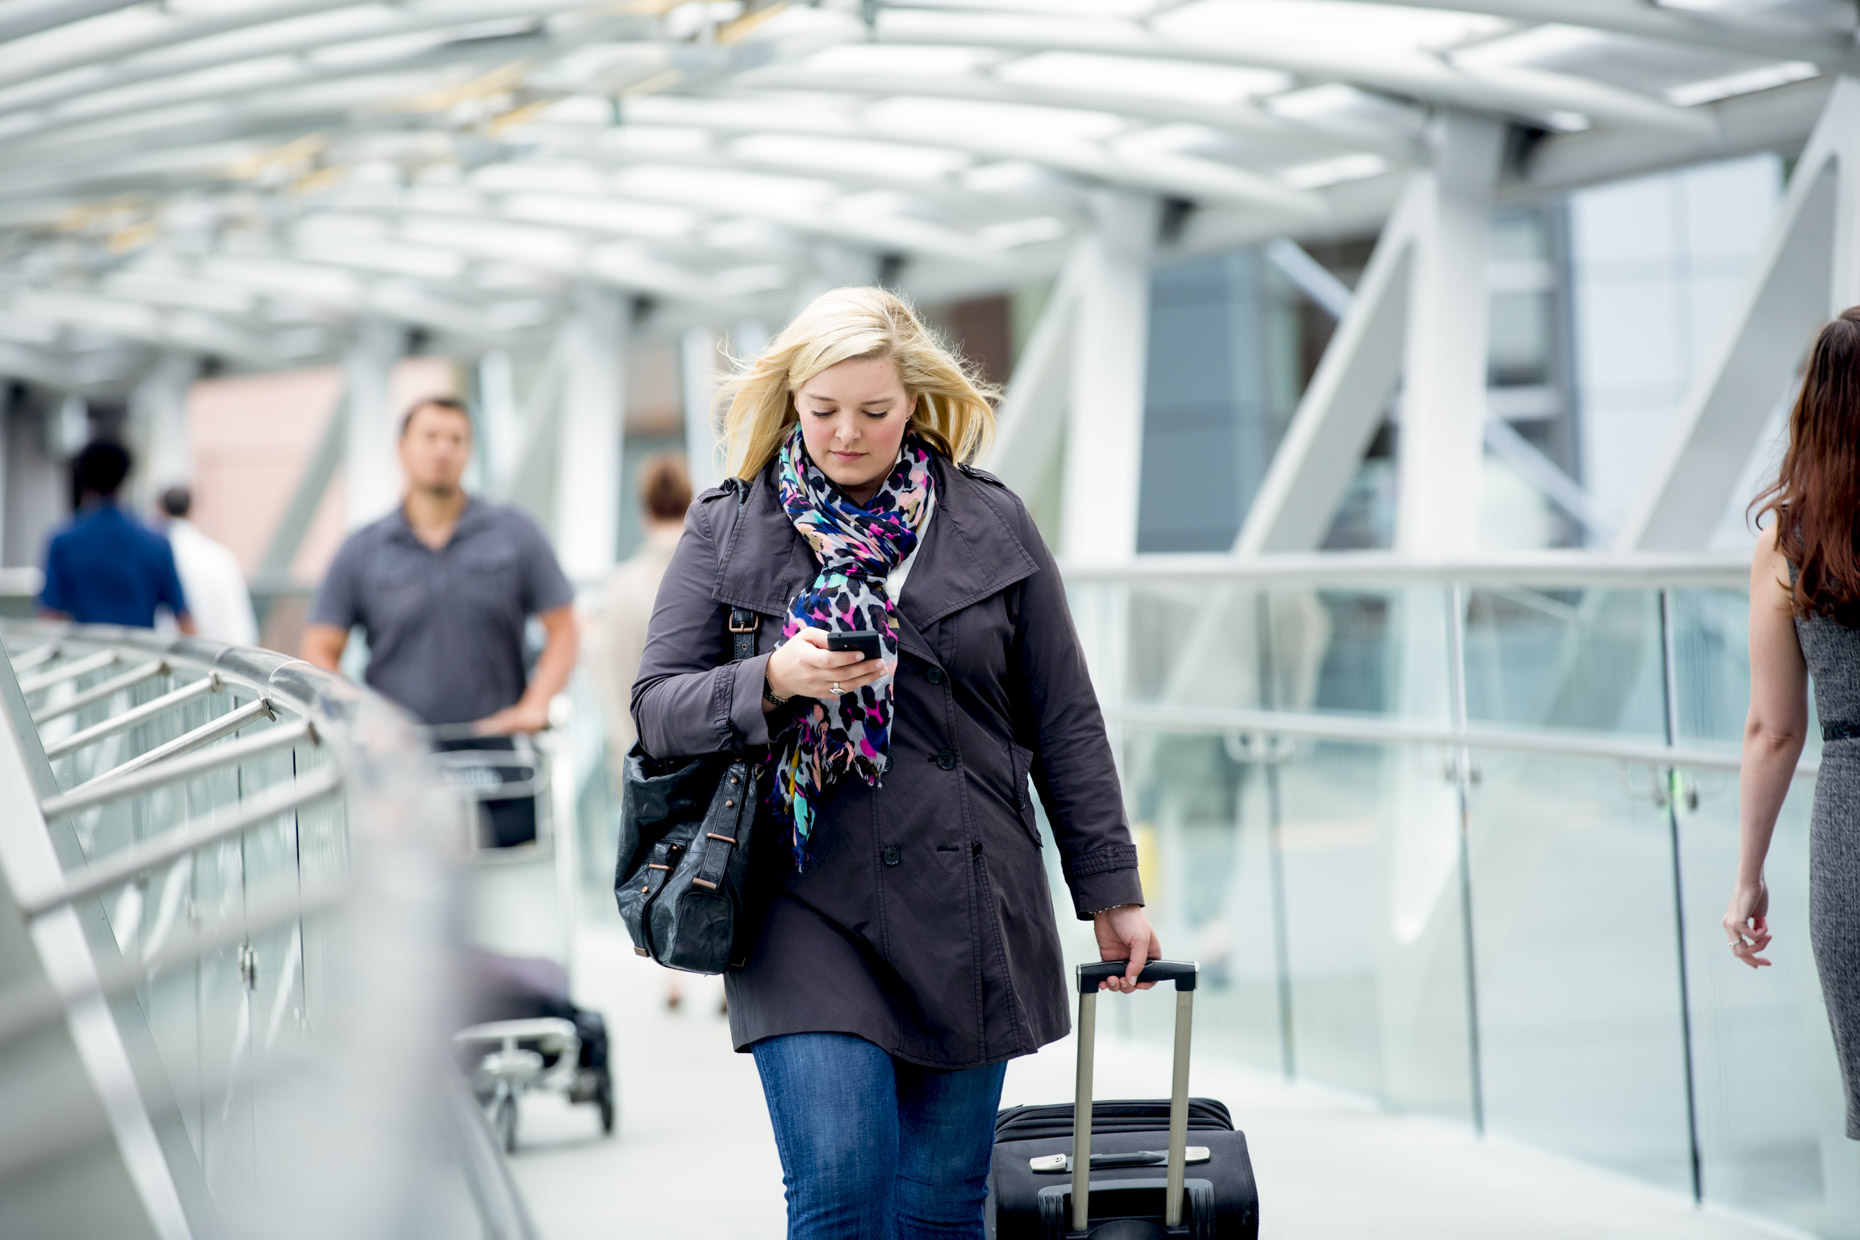 Woman walking through airport terminal looking at cell phone